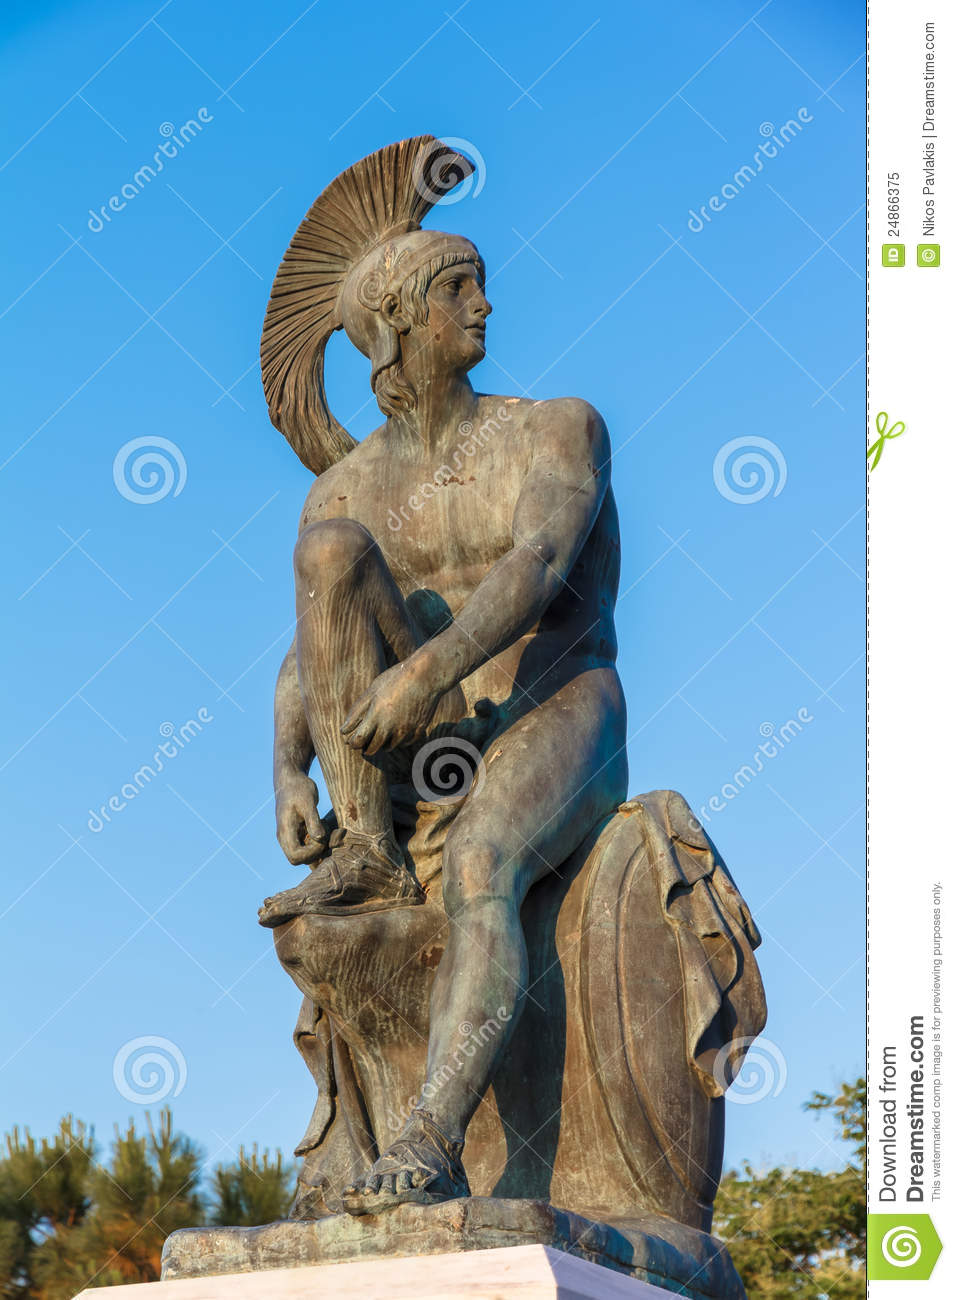 ancient greek hero Read and download the ancient greek hero in 24 hours gregory nagy free ebooks in pdf format history of the decline and fall of the roman empire killing jesus myths and.